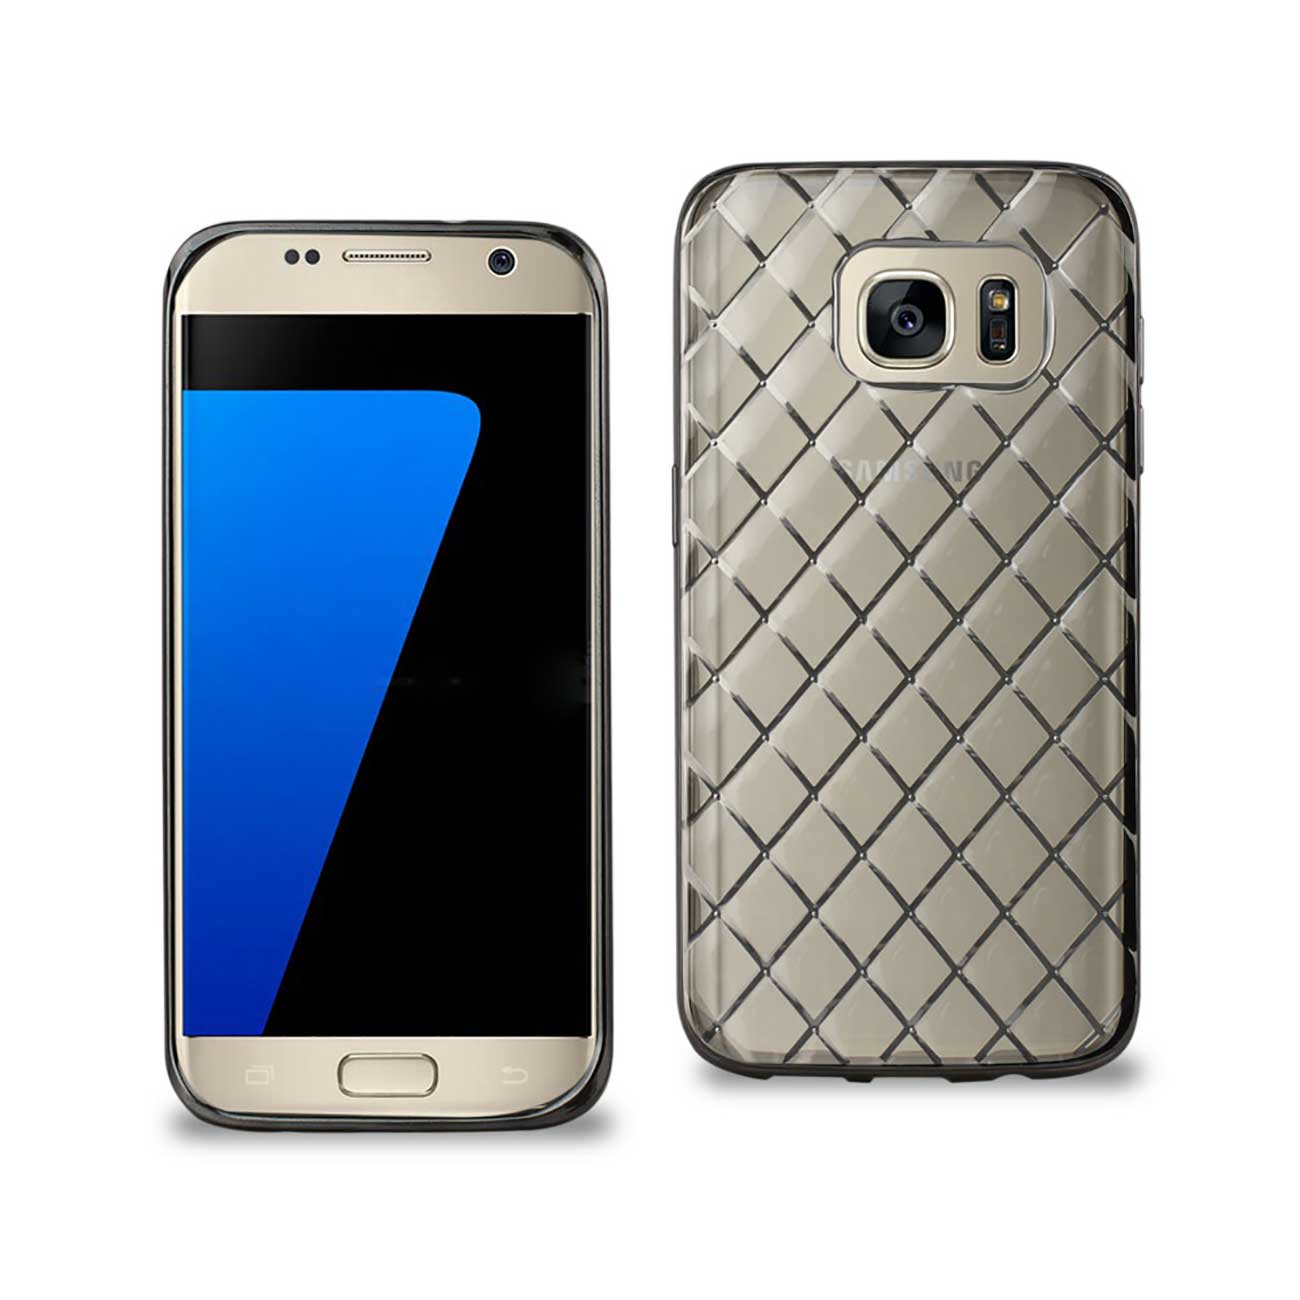 SAMSUNG GALAXY S7 FLEXIBLE 3D RHOMBUS PATTERN TPU CASE WITH SHINY FRAME IN CLEAR